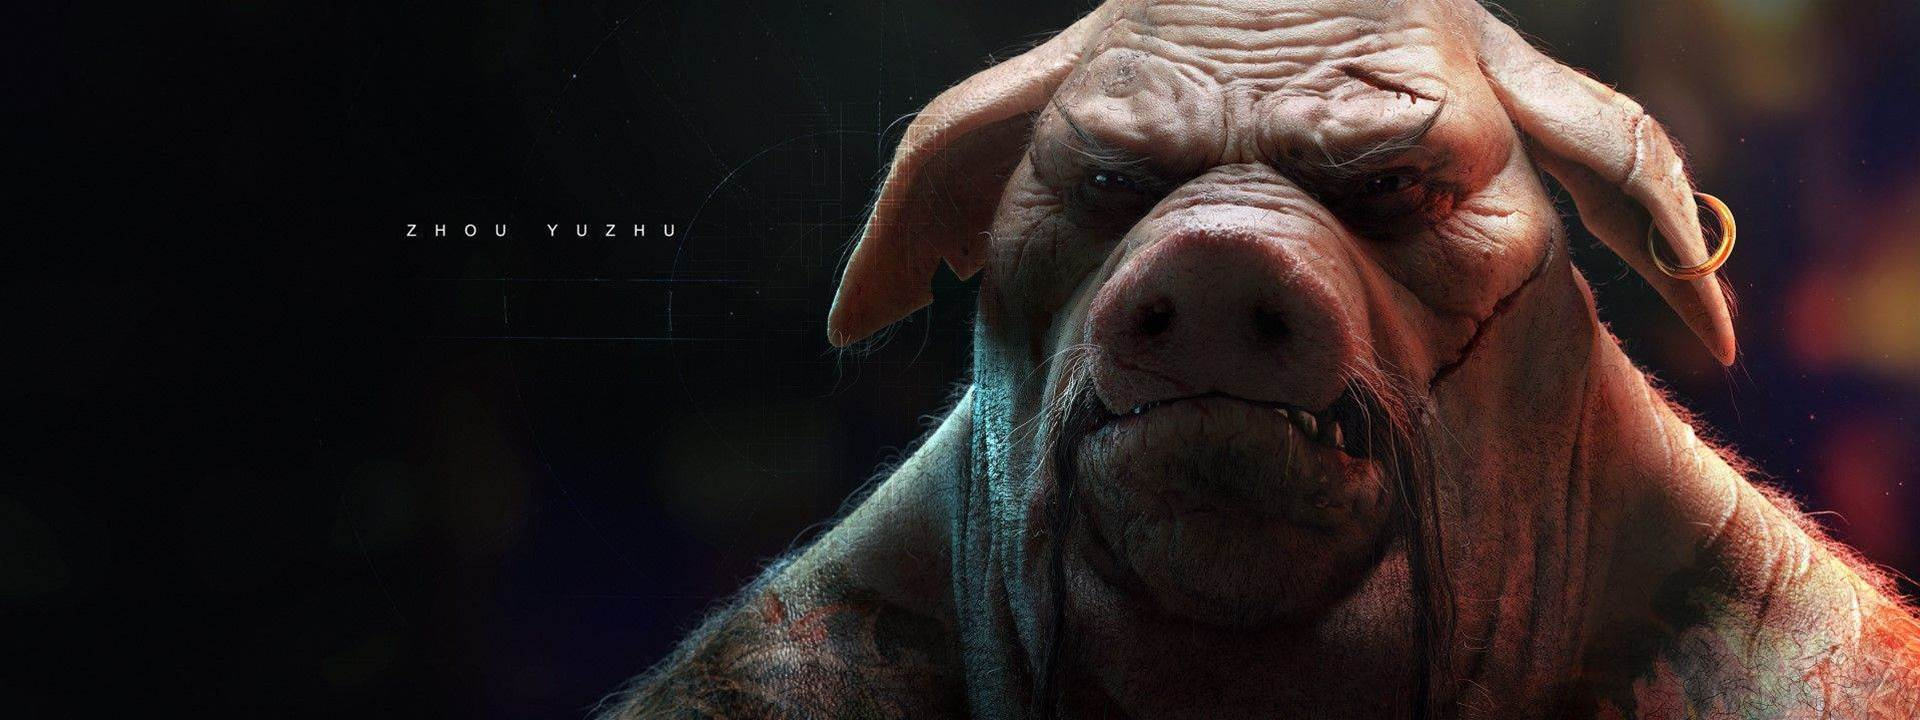 Space monkeys and sci-fi madness in Beyond Good and Evil 2 art